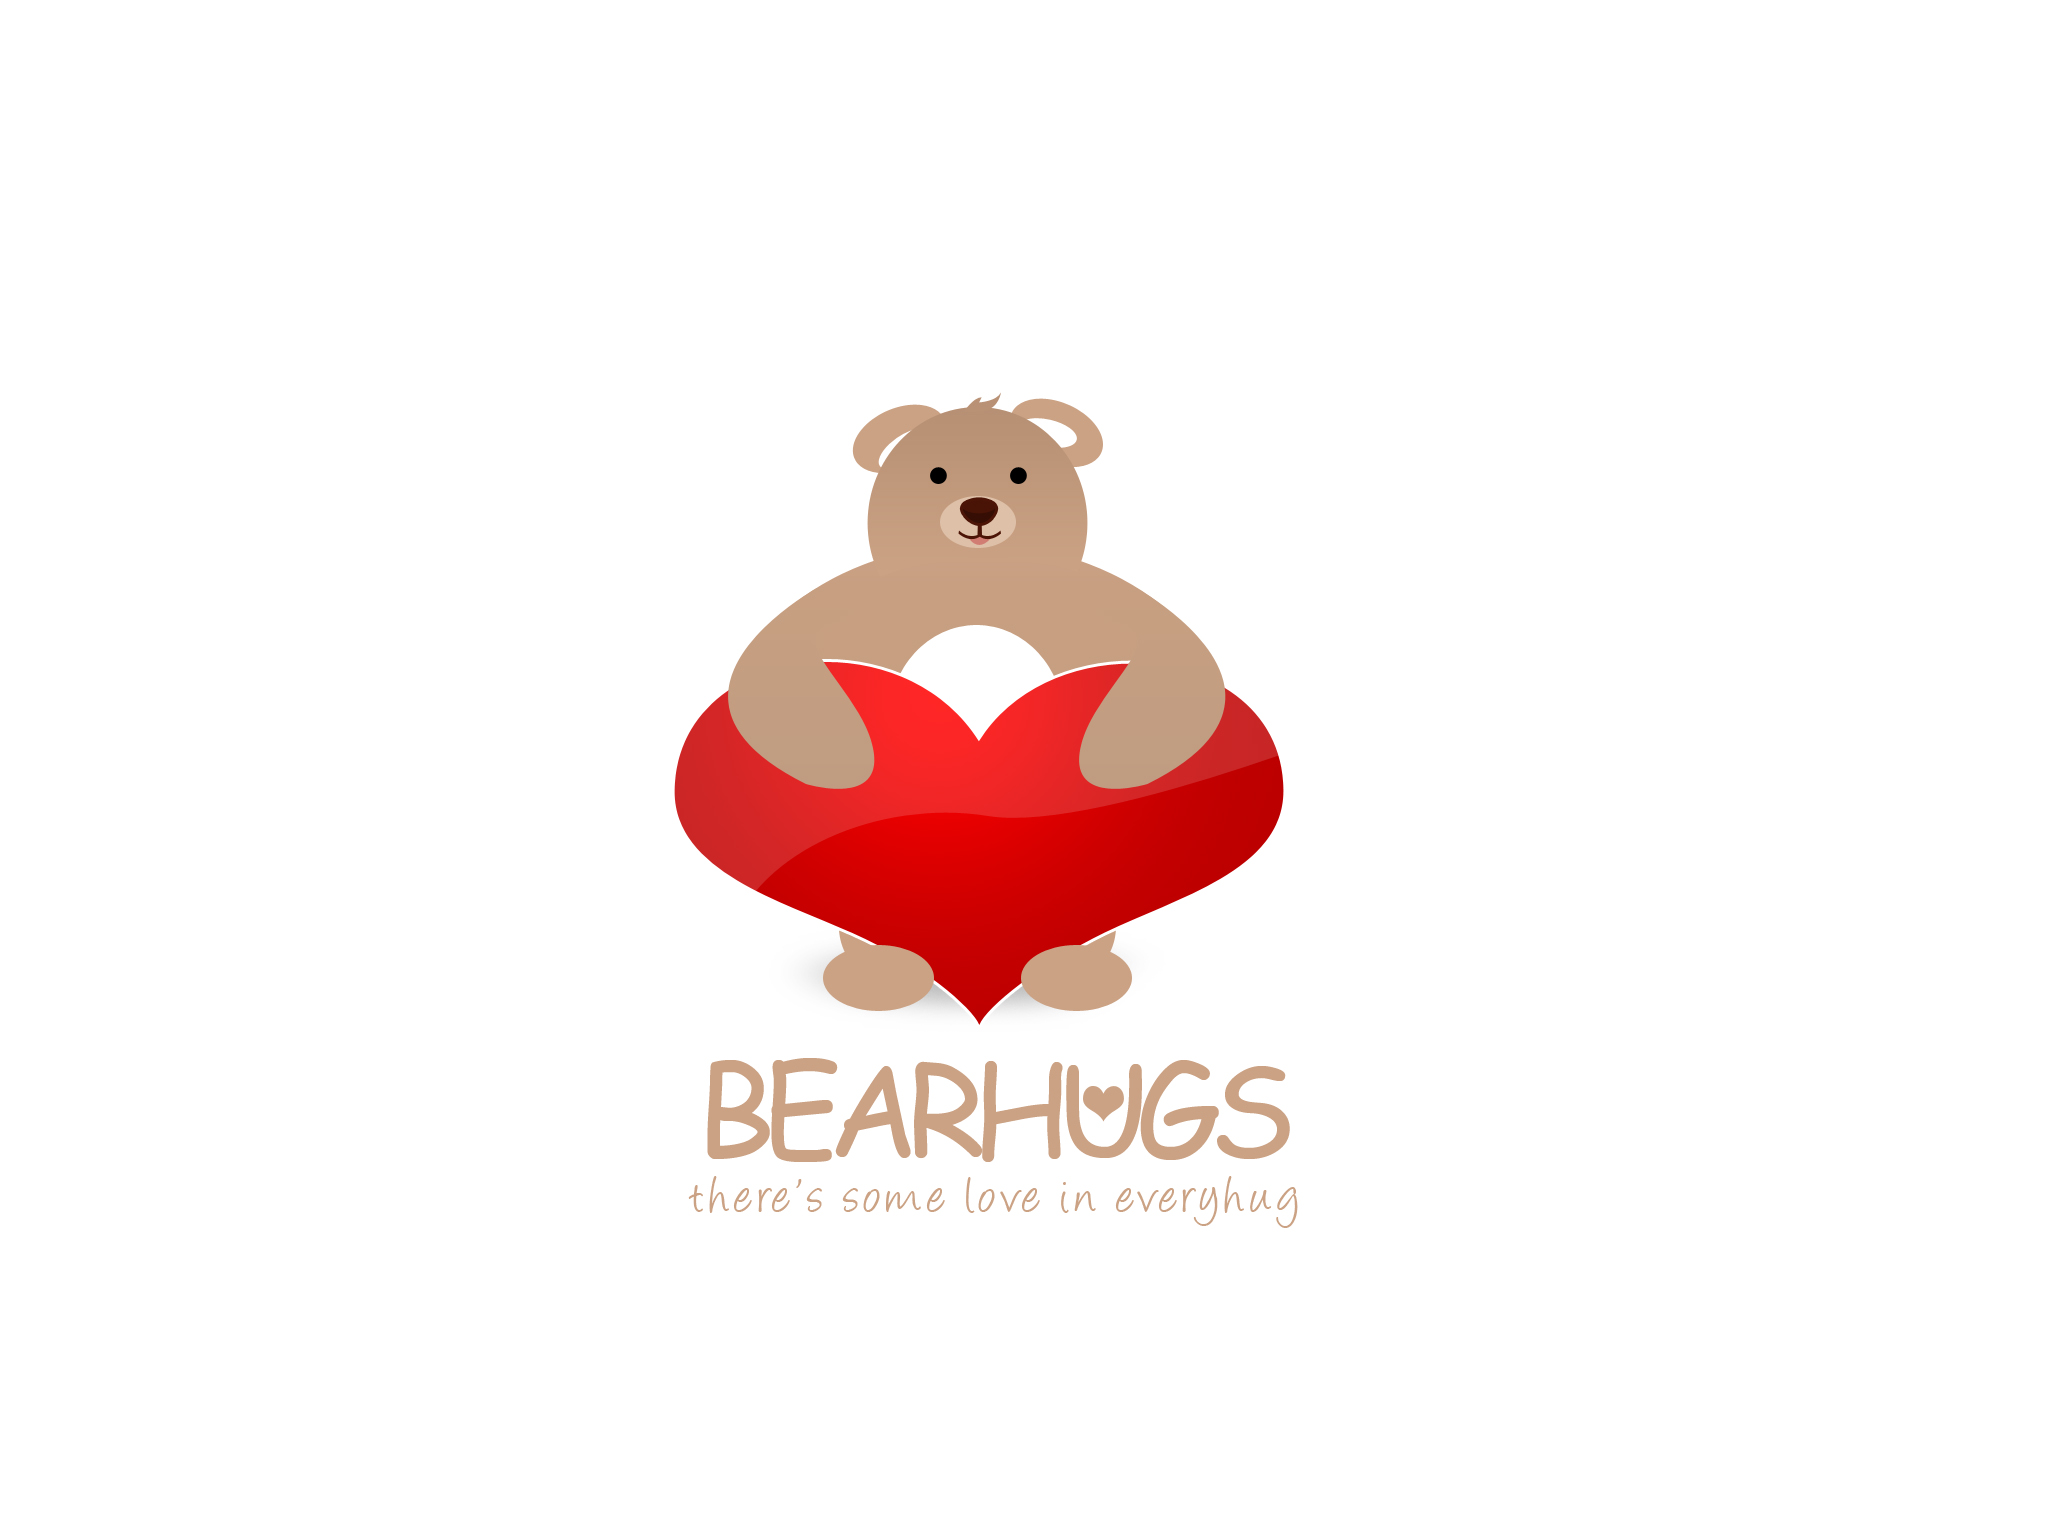 Logo Design by Jan Chua - Entry No. 17 in the Logo Design Contest Inspiring Logo Design for BearHugs.